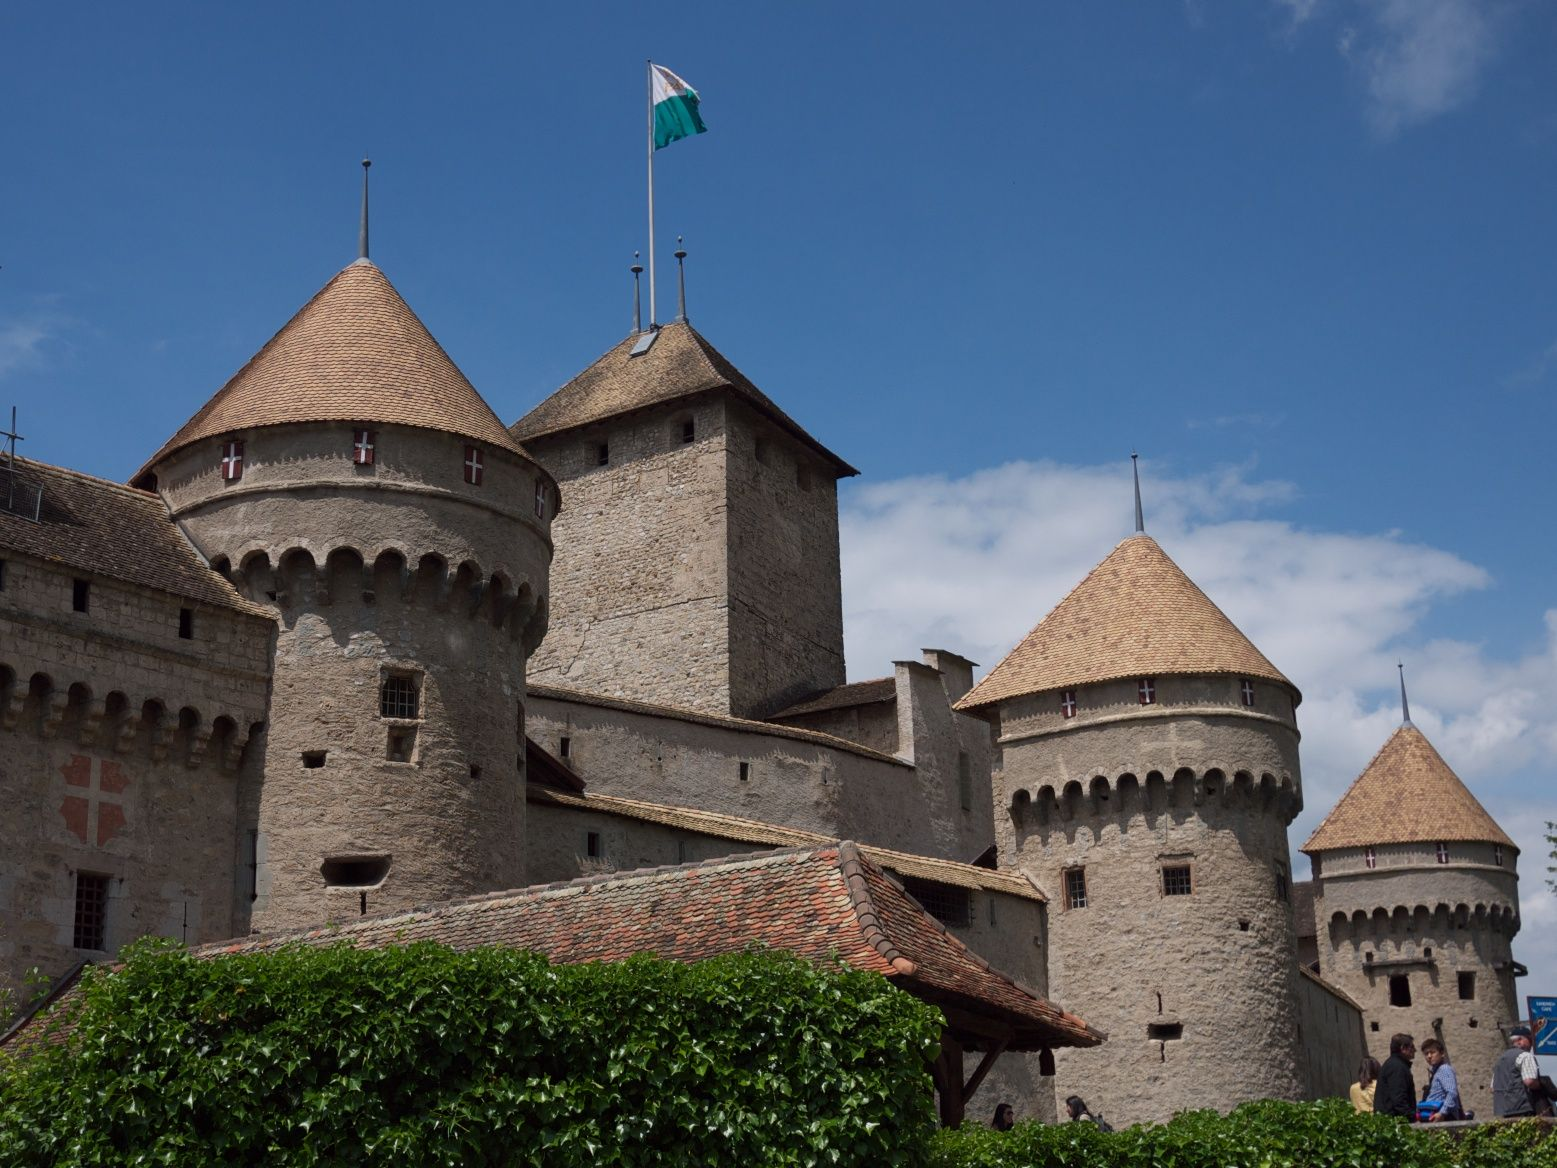 château de chillon | Day Trip to Château de Chillon